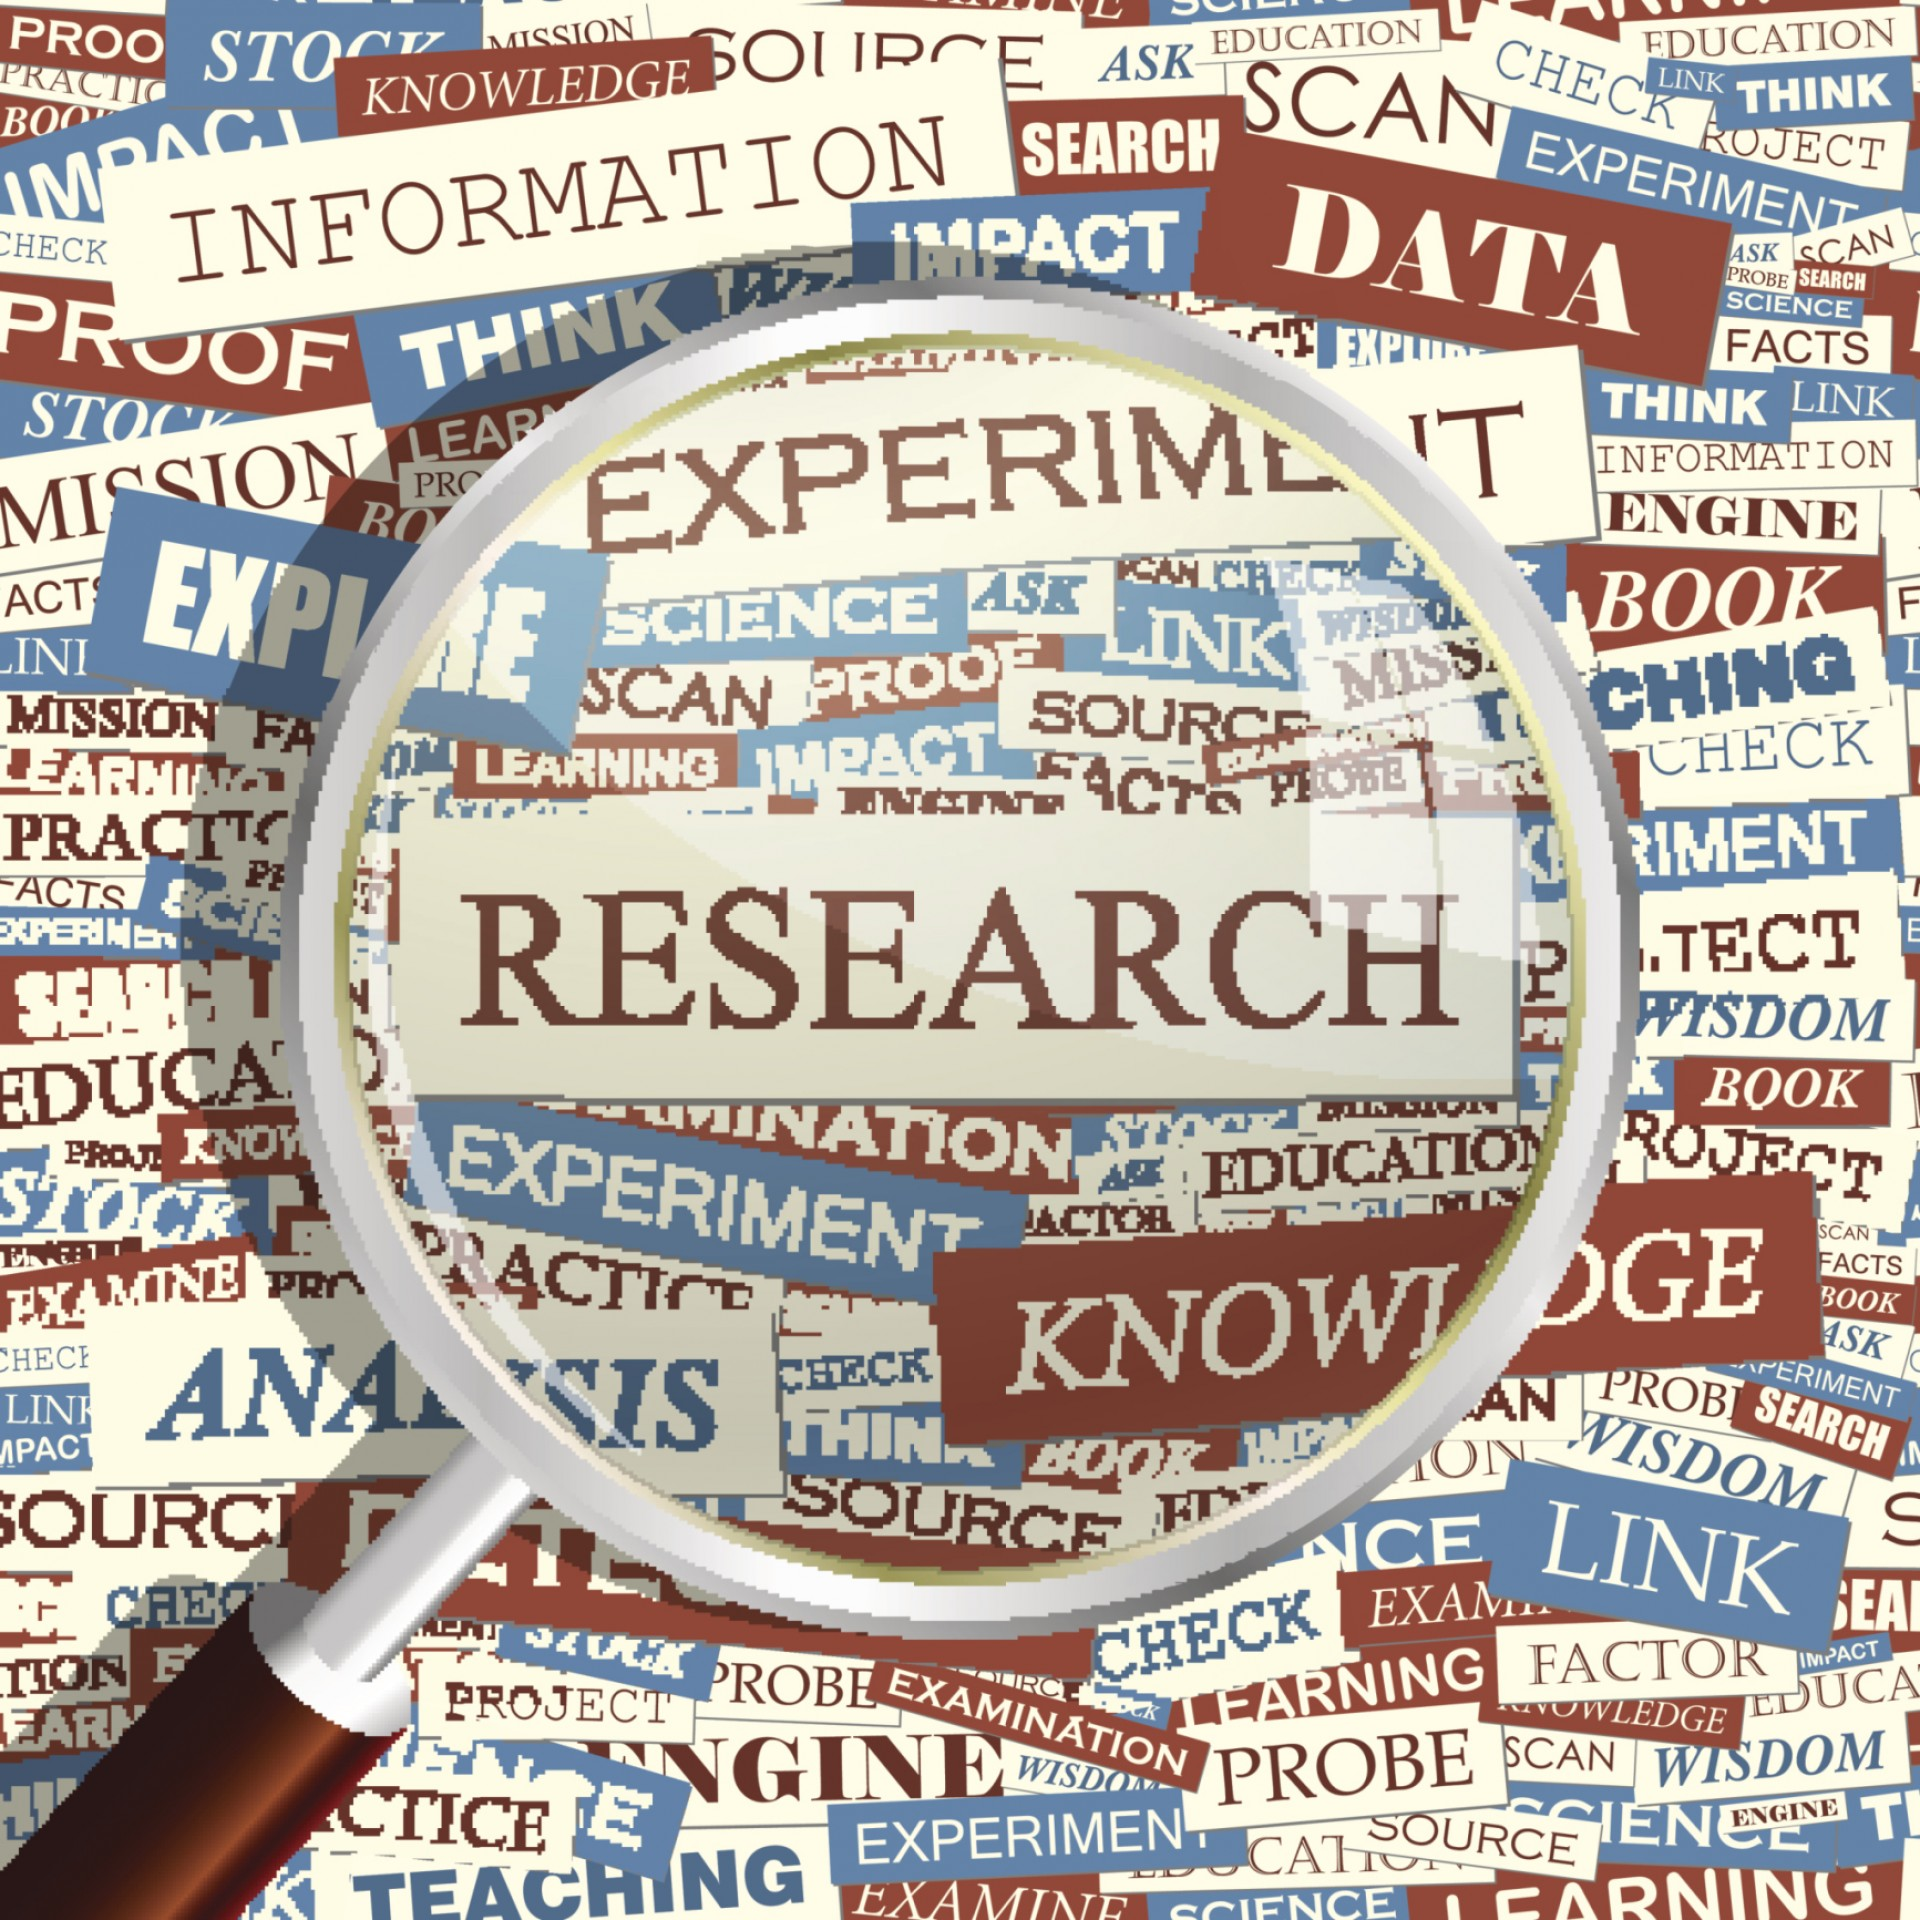 004 Research Papers Online Paper Singular Find Free On Food Ordering System Grocery Shopping In India 1920